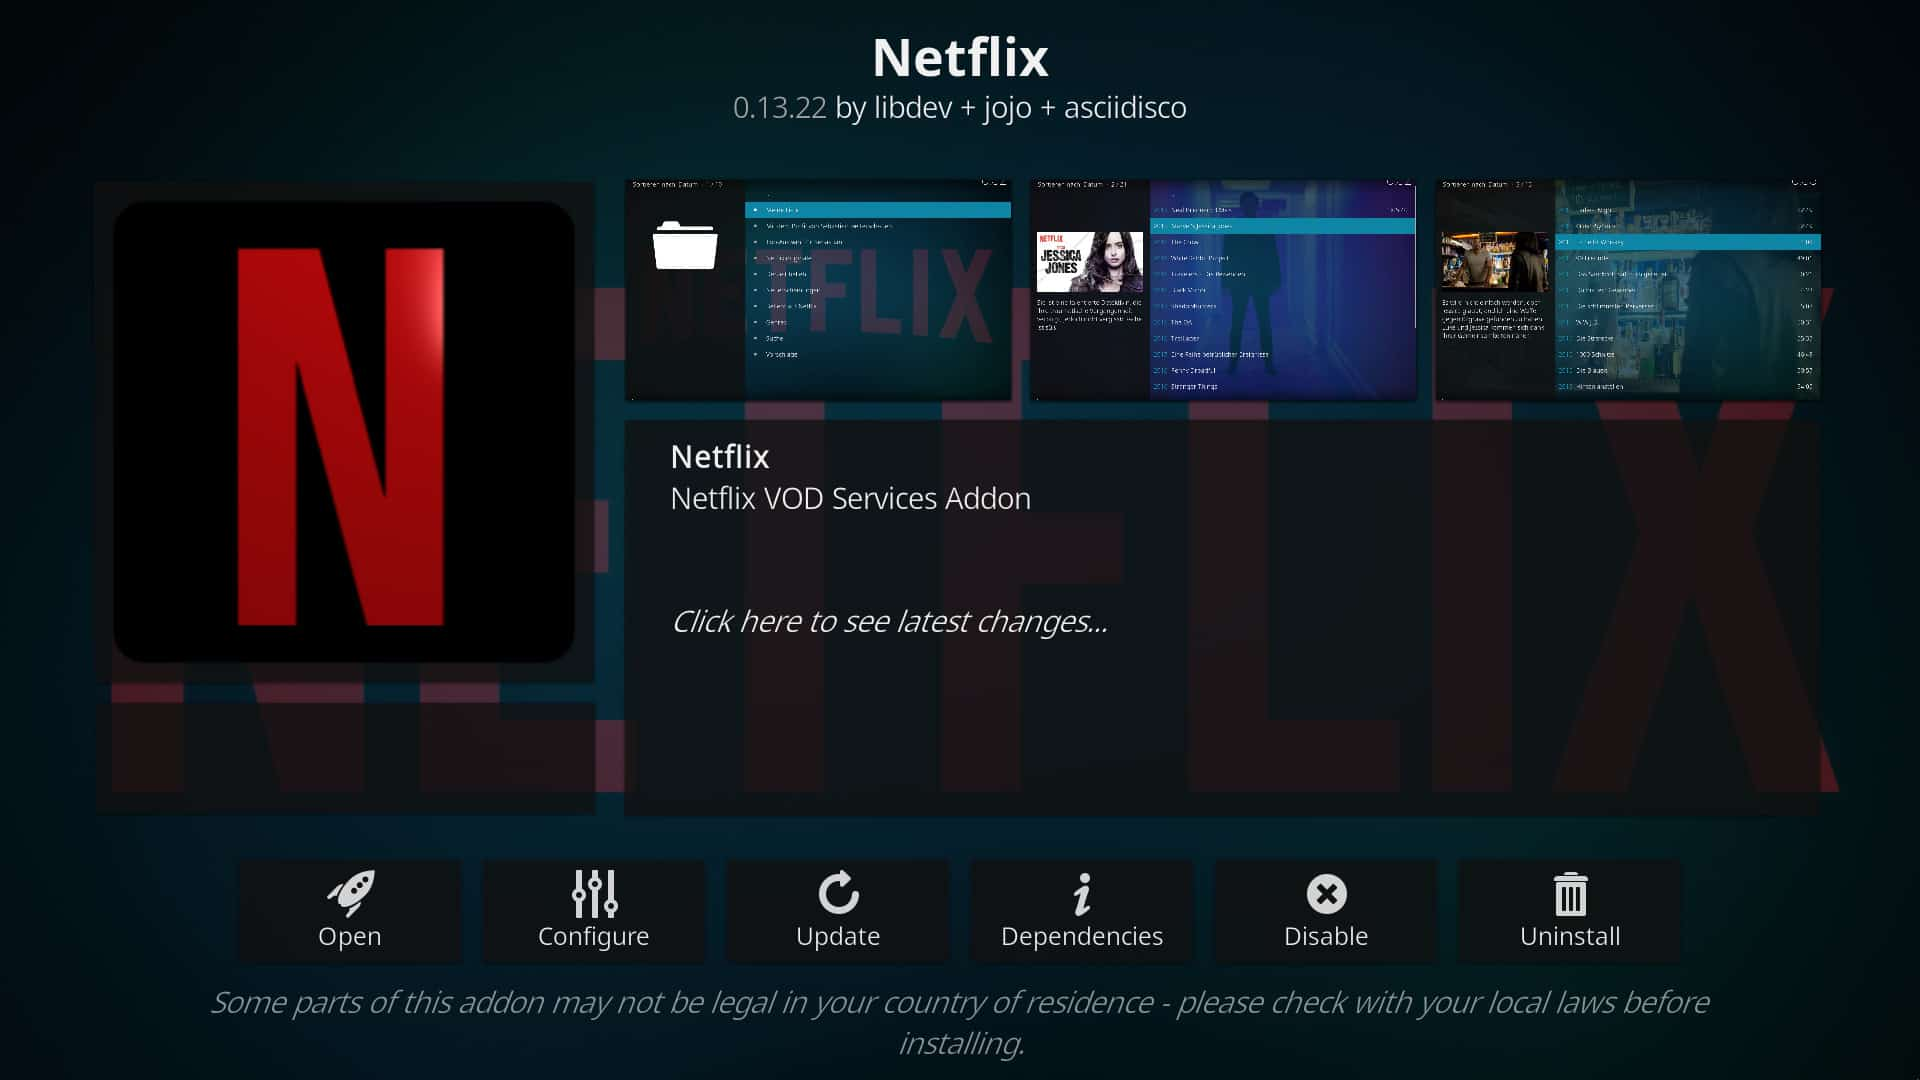 Best Kodi Addons August 2019: 133 tested, these few passed inspection!